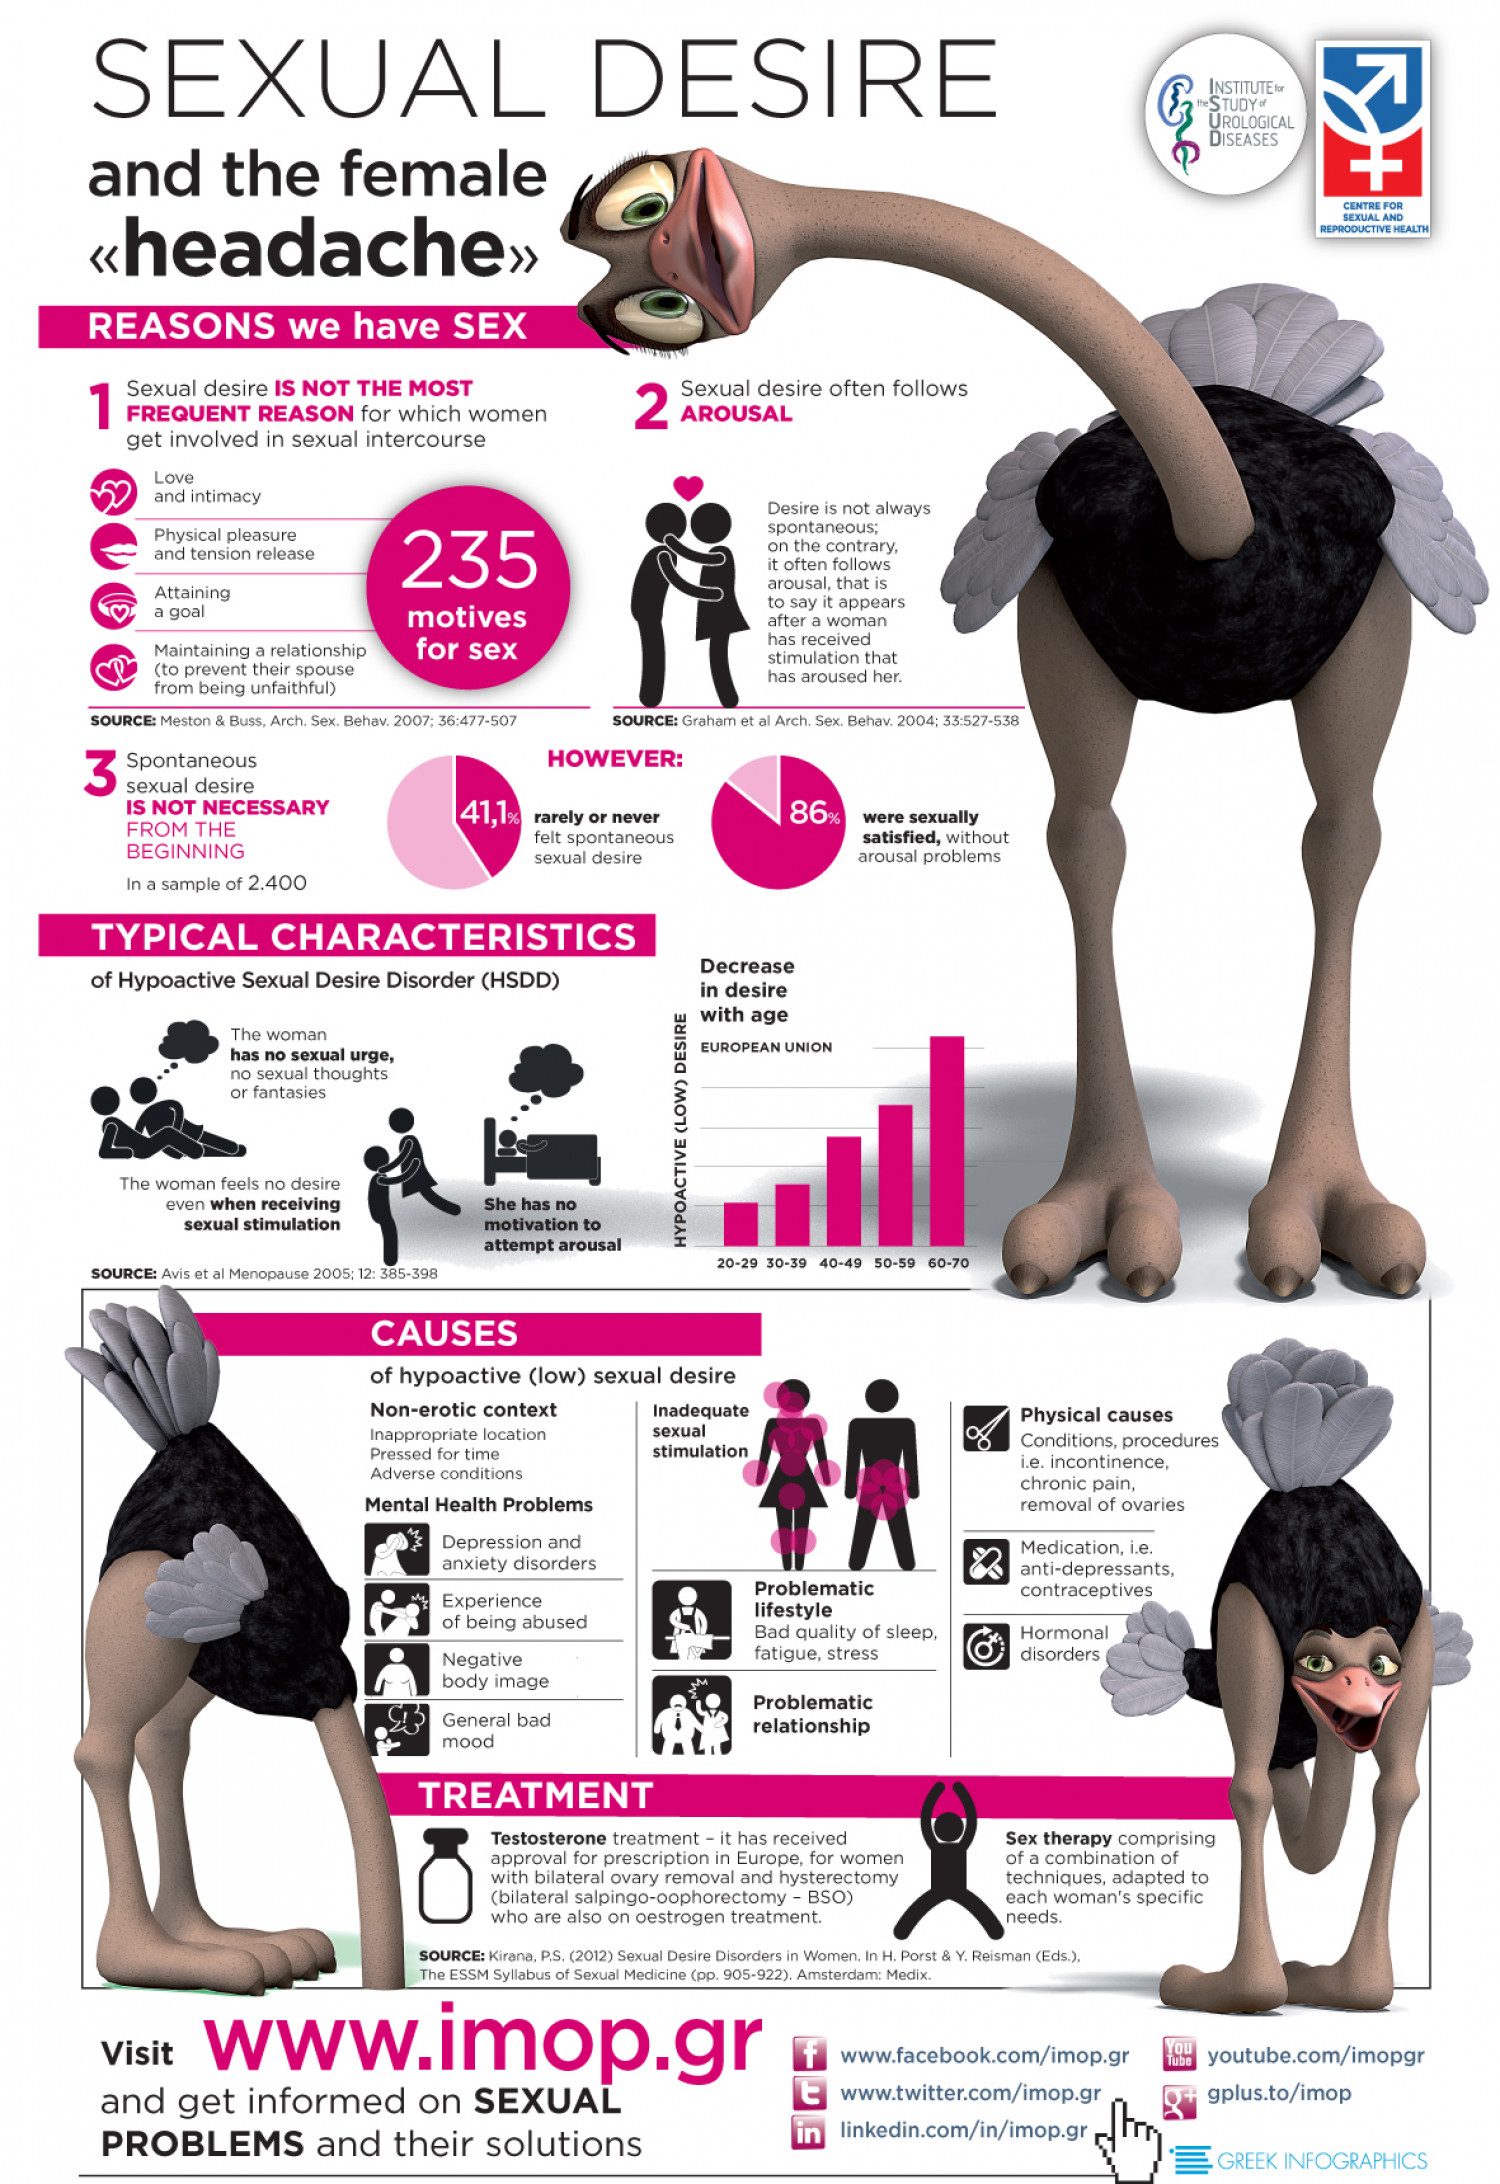 Sexual desire and the female headache Infographic